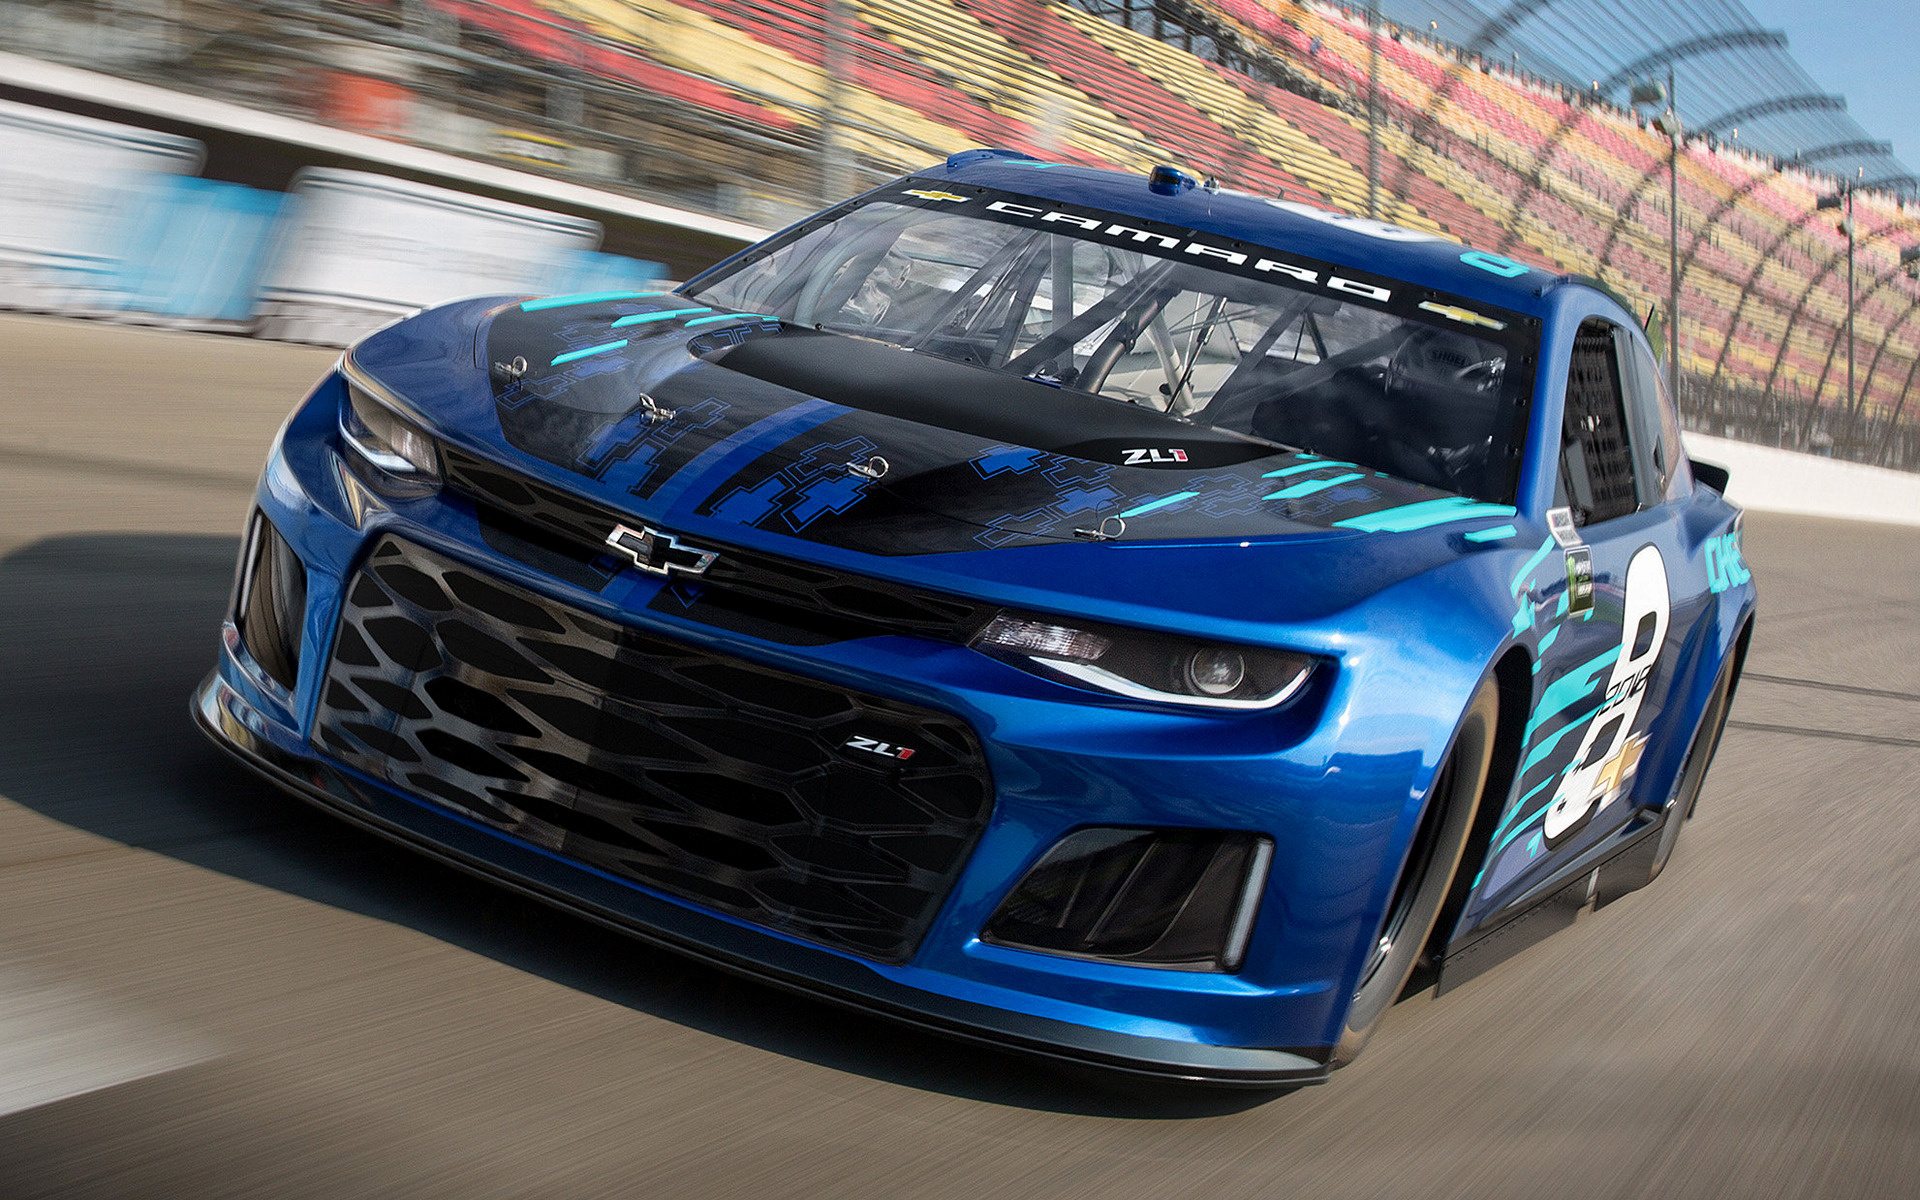 Chevrolet Camaro ZL1 NASCAR Cup Series (2018) Wallpapers and HD Images - Car Pixel